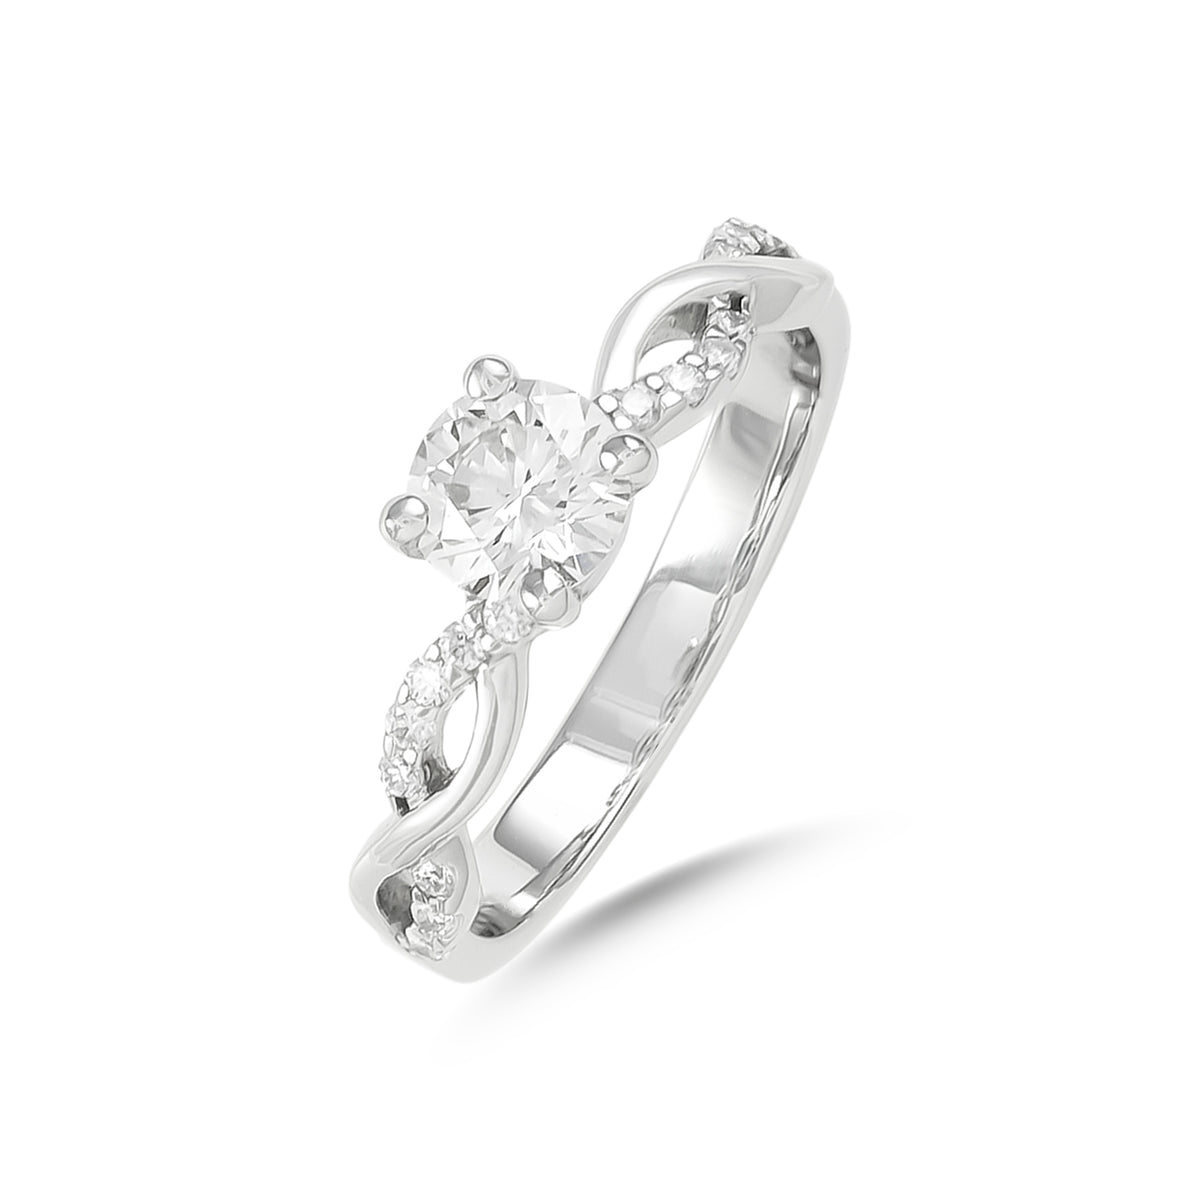 0.55ct Brilliant-Cut Diamond Twist Engagement Ring